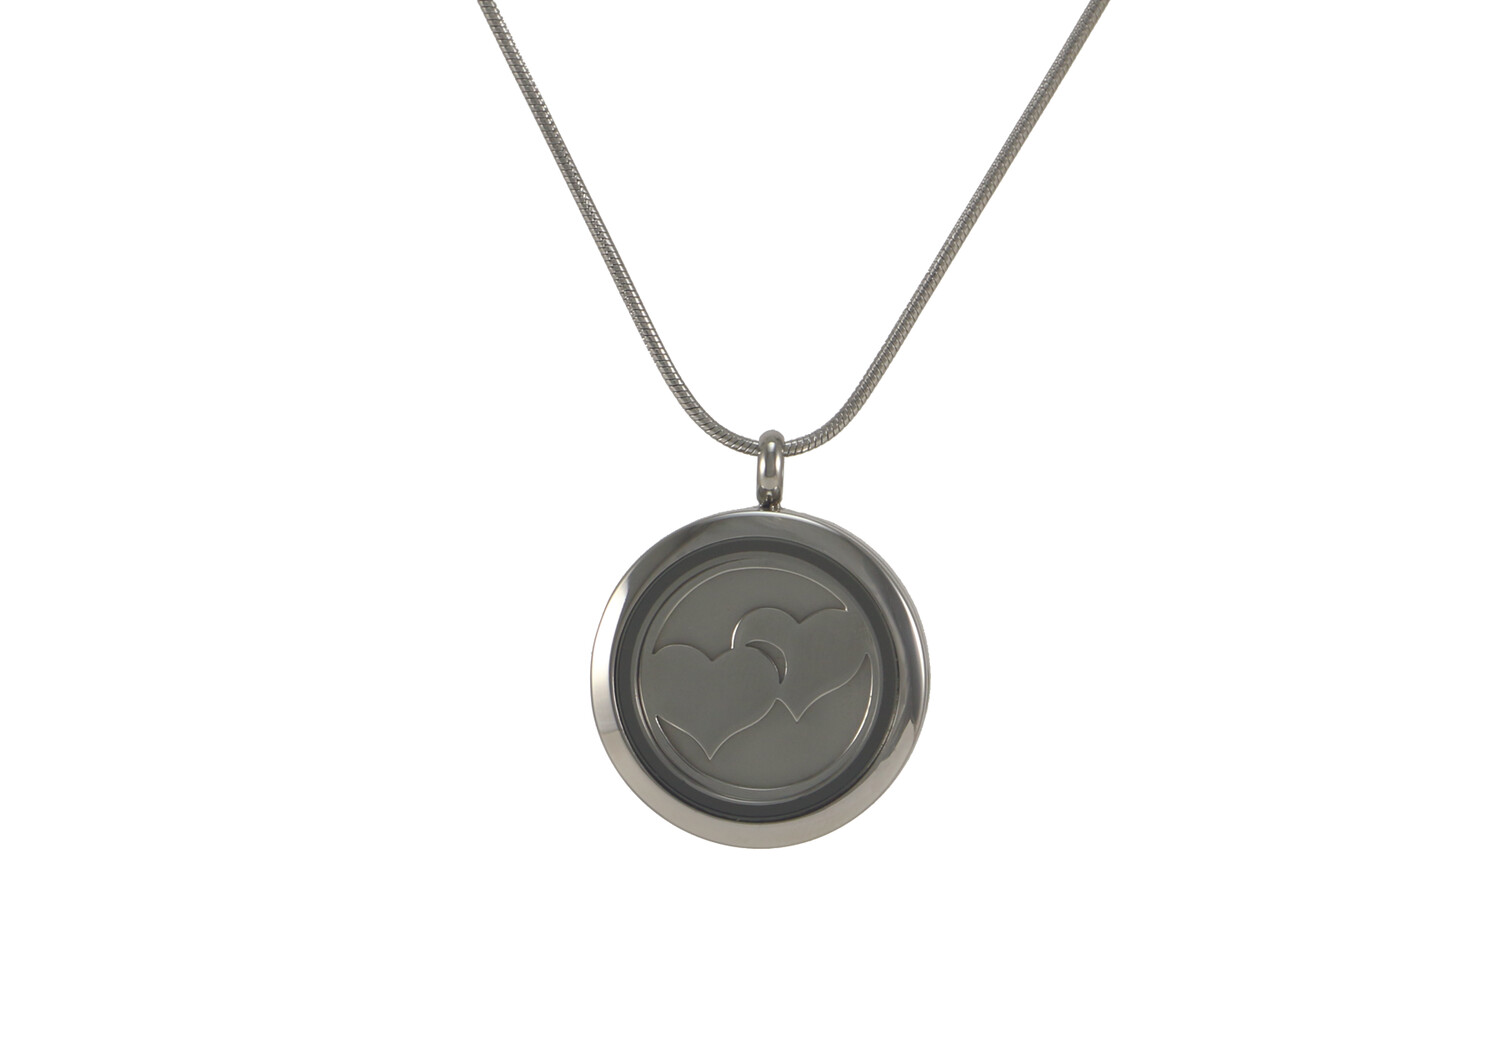 """Round Pendant with 2 inserts (bronze & pewter) Double Heart - includes 19"""" chain"""